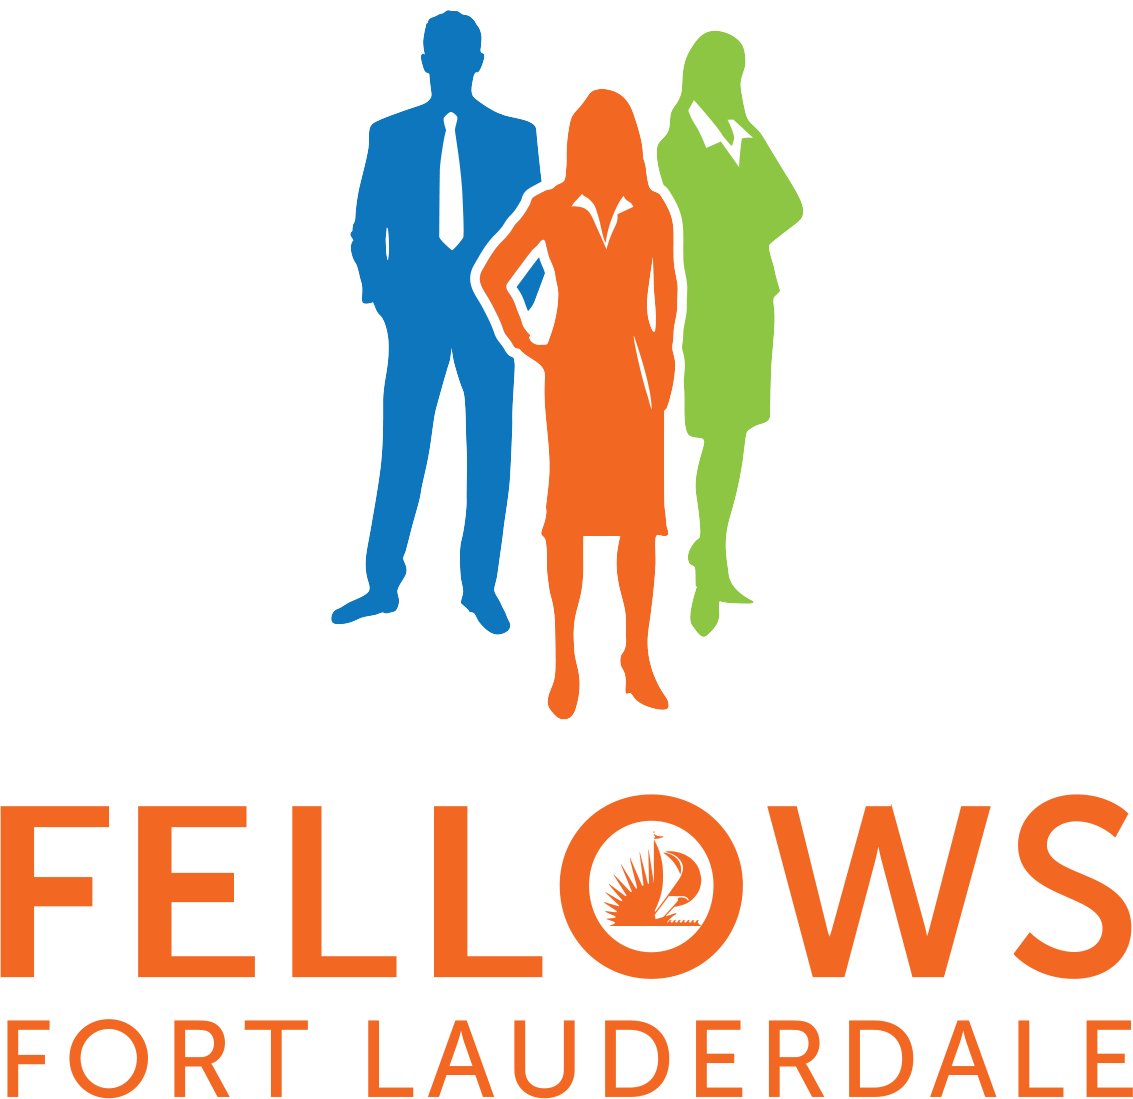 2125 FTL Fellows Logo Vertical